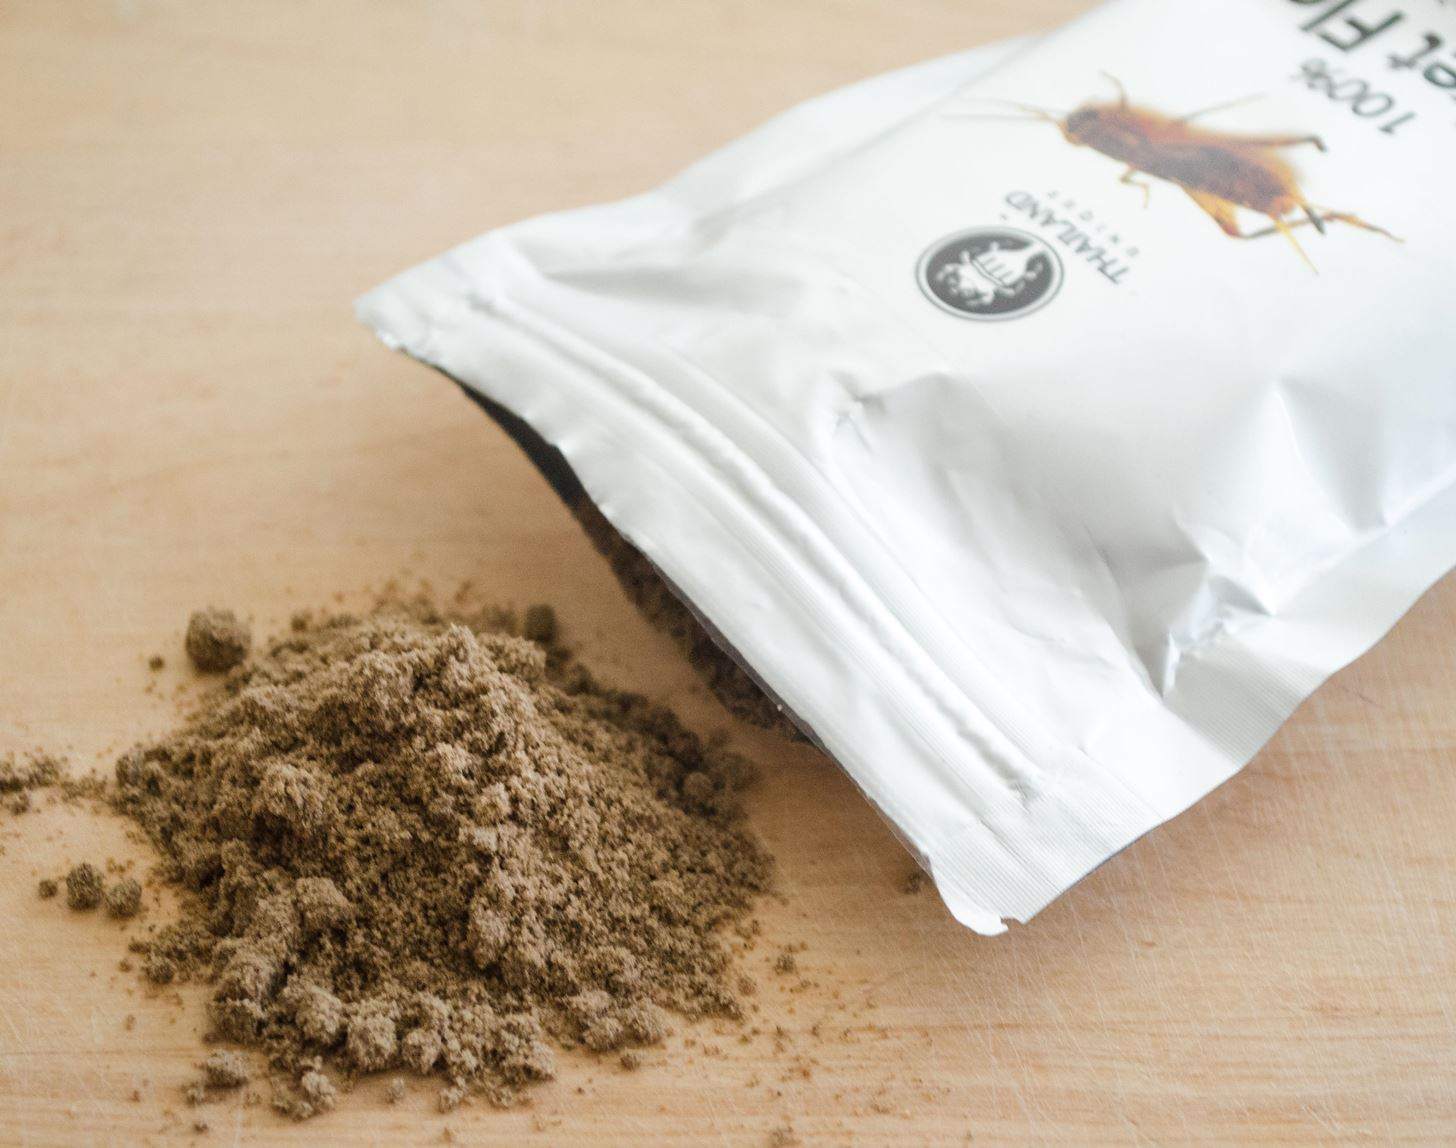 Tested: Baking with Cricket Flour Is Not as Gross as You Think